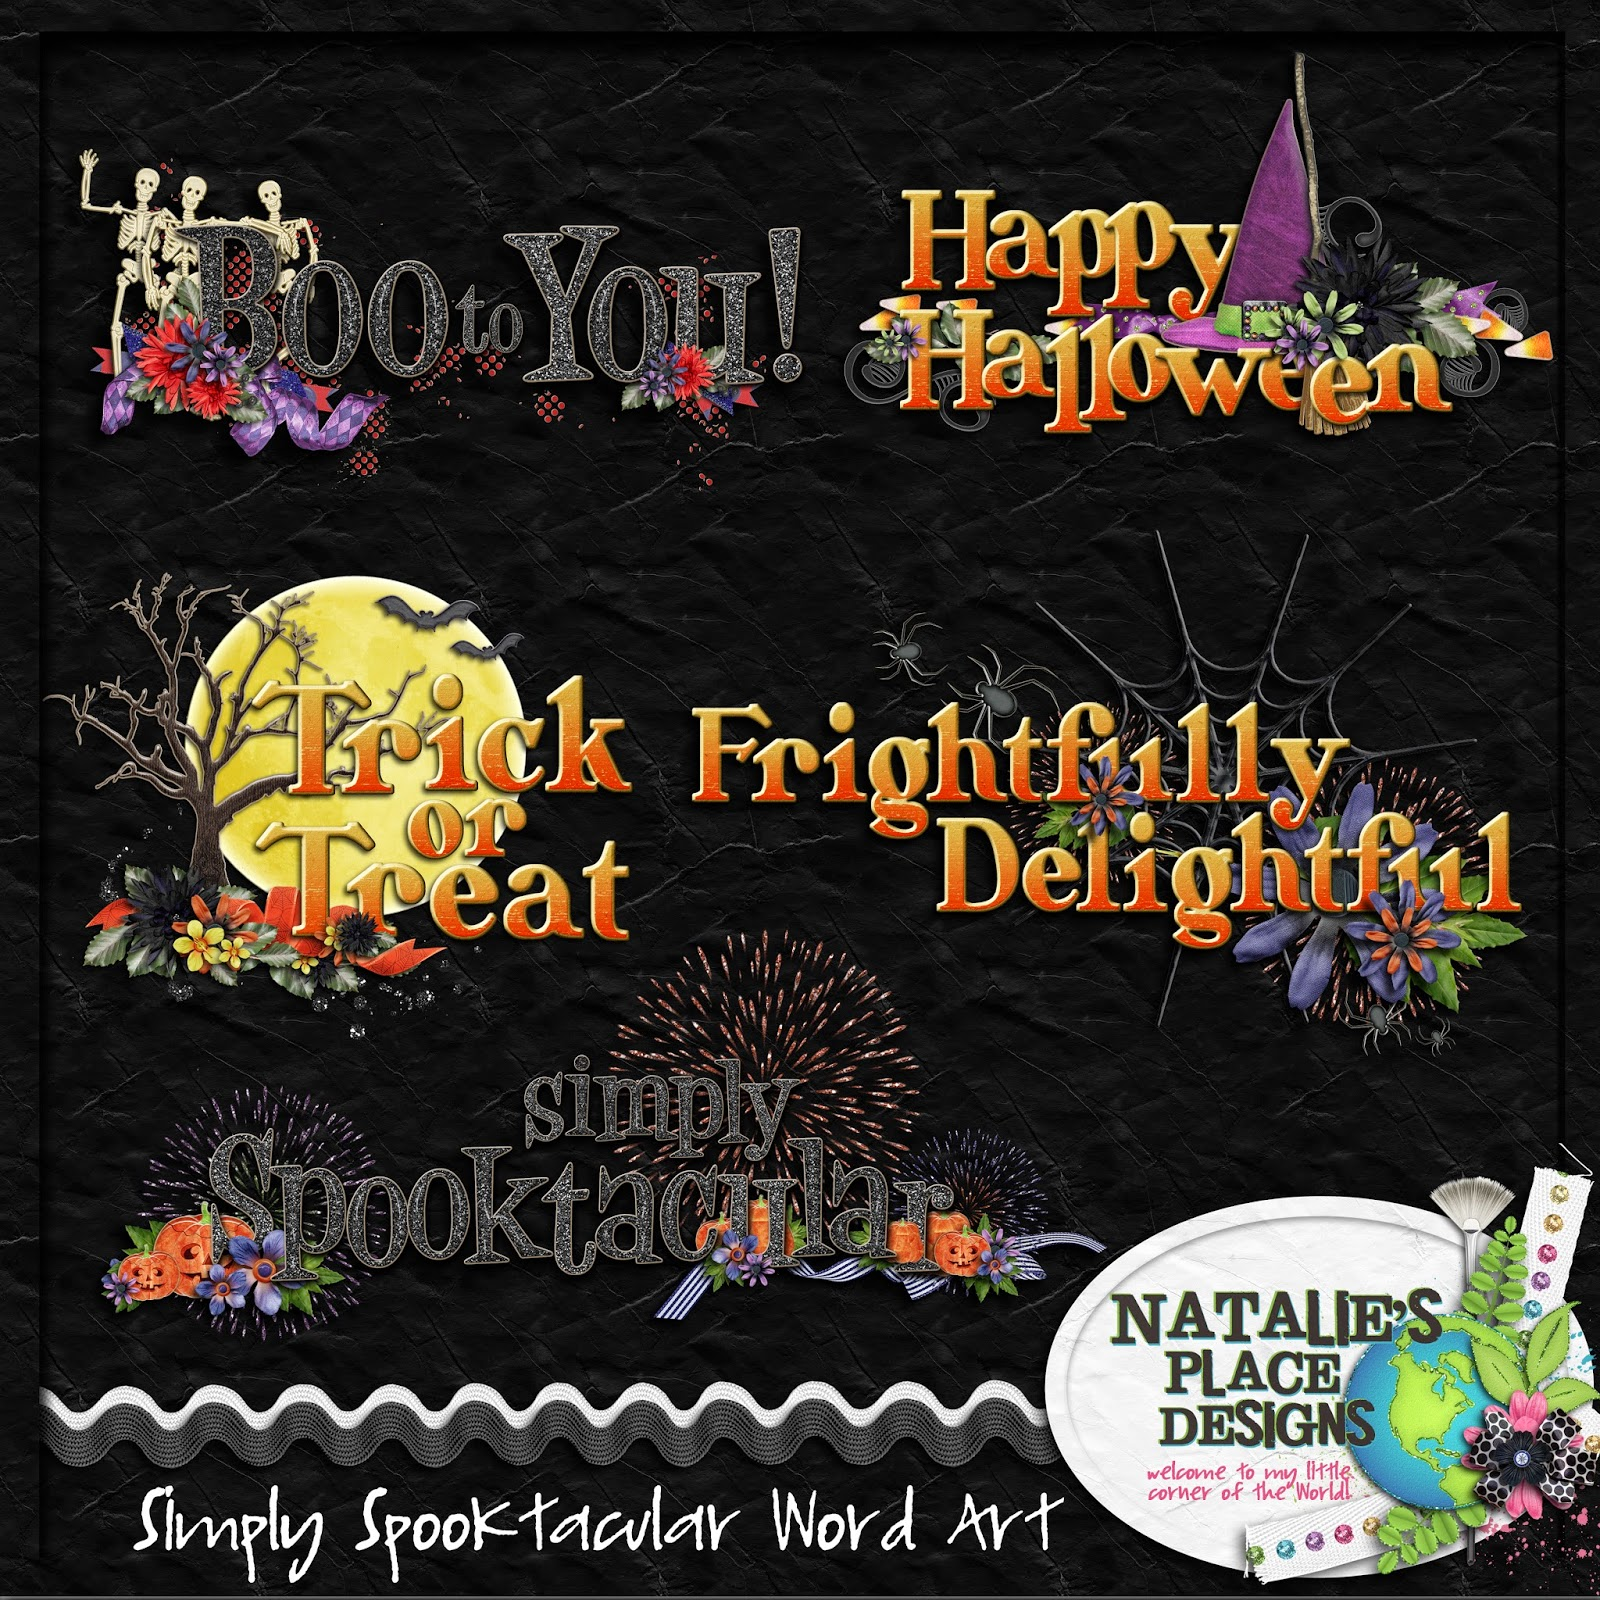 http://www.nataliesplacedesigns.com/store/p458/Simply_Spooktacular_Word_Art.html